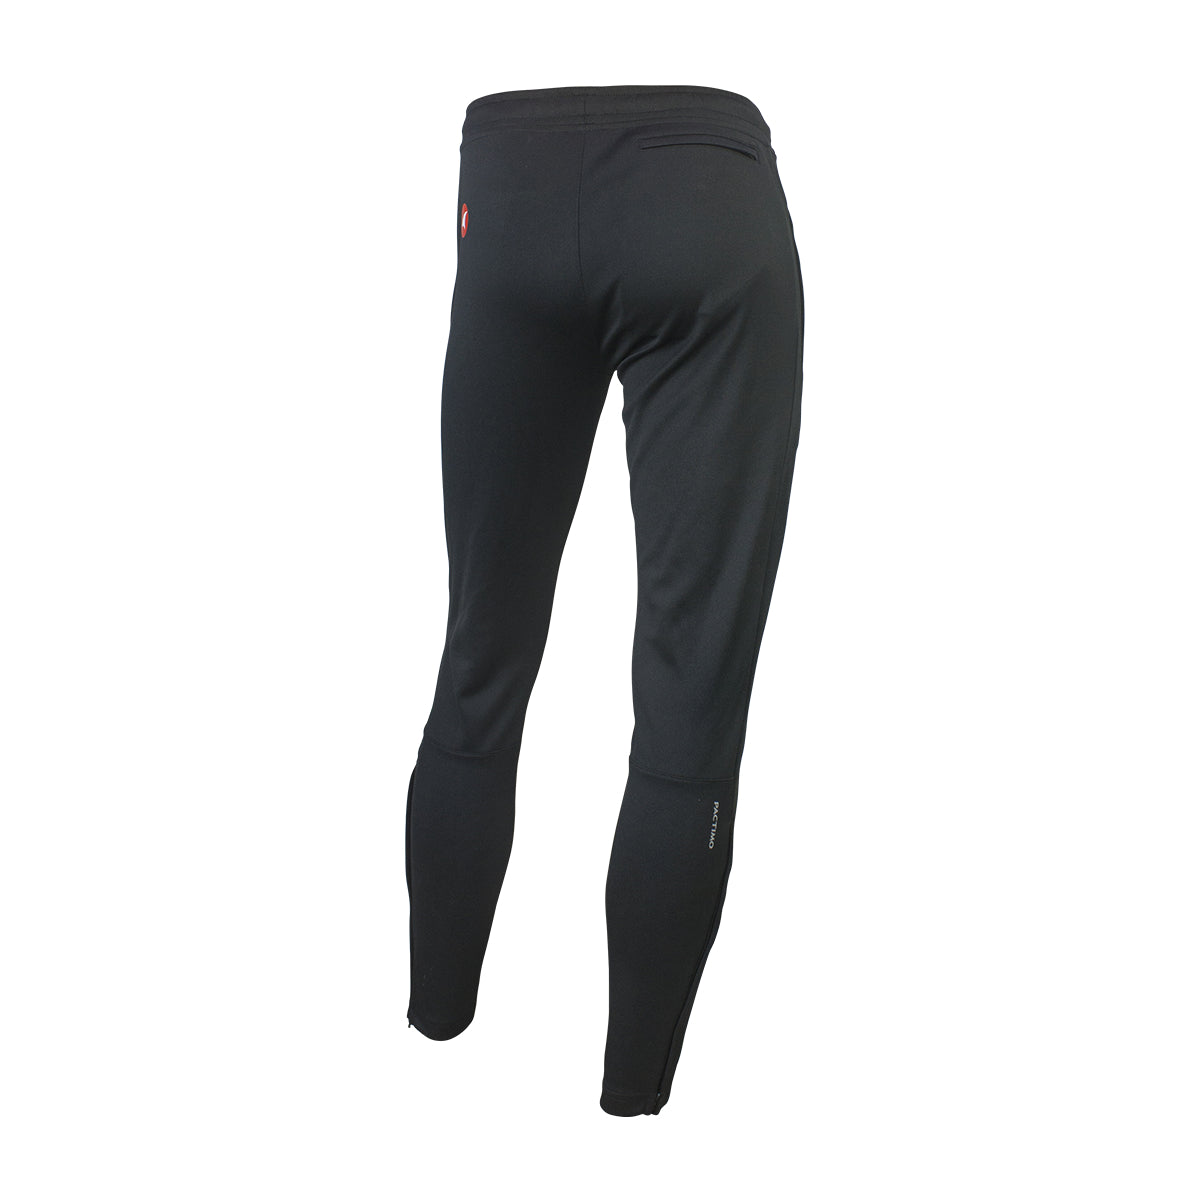 faa5a762963e Sport Warm-Up Pants - Cycling Lifestyle Apparel - Pactimo